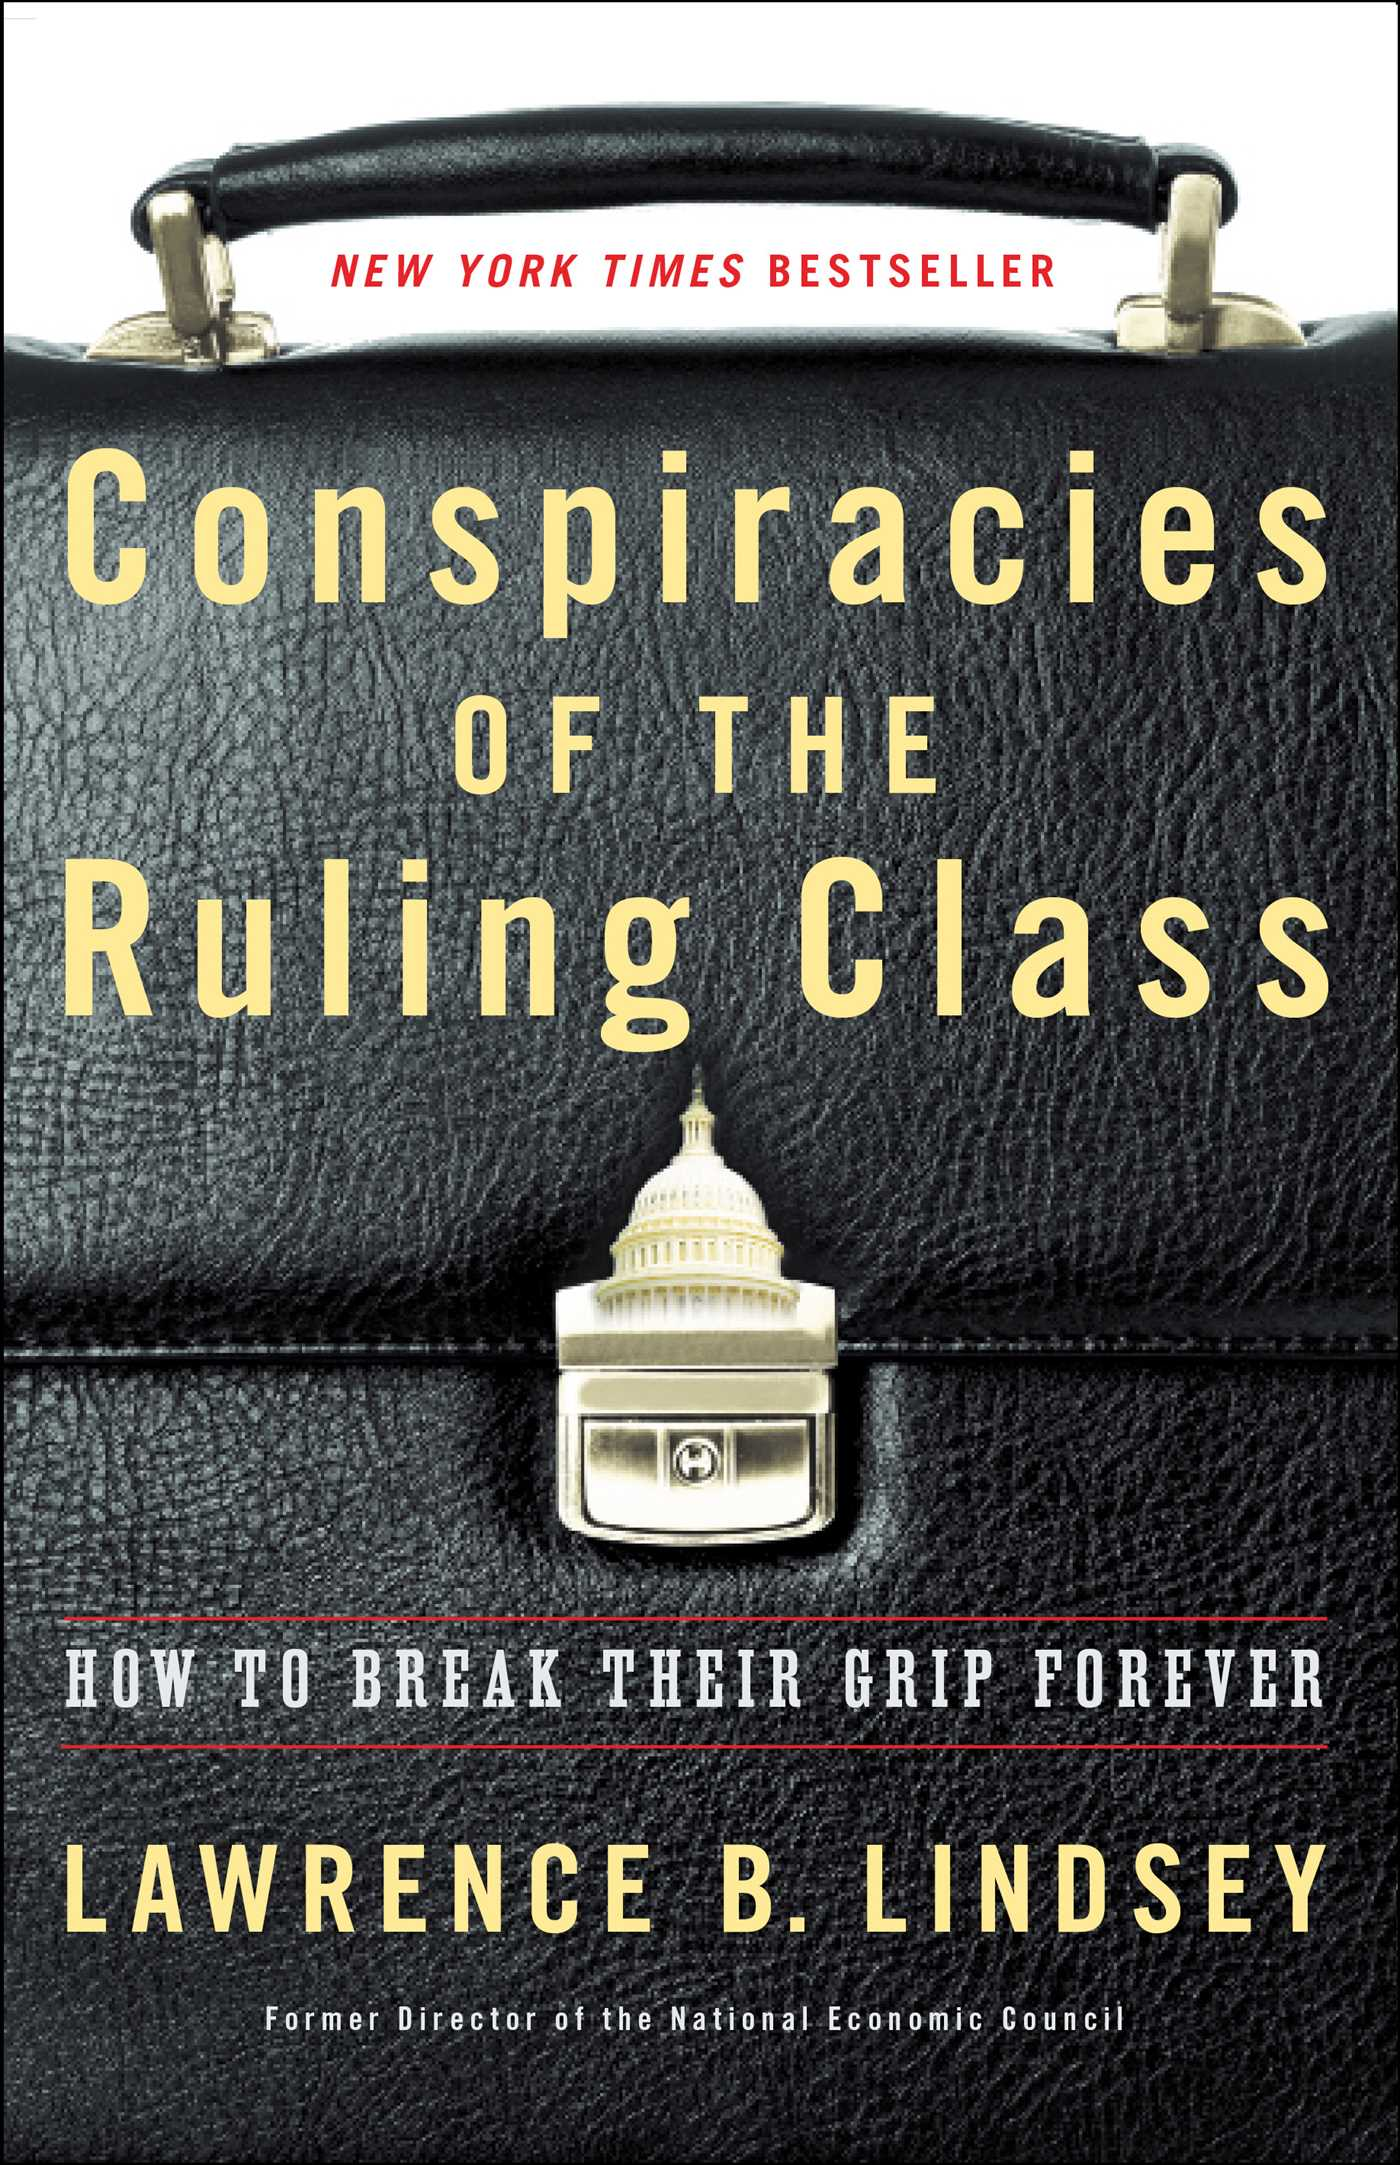 Image result for conspiracies of the ruling class by book cover lawrence b lindsey